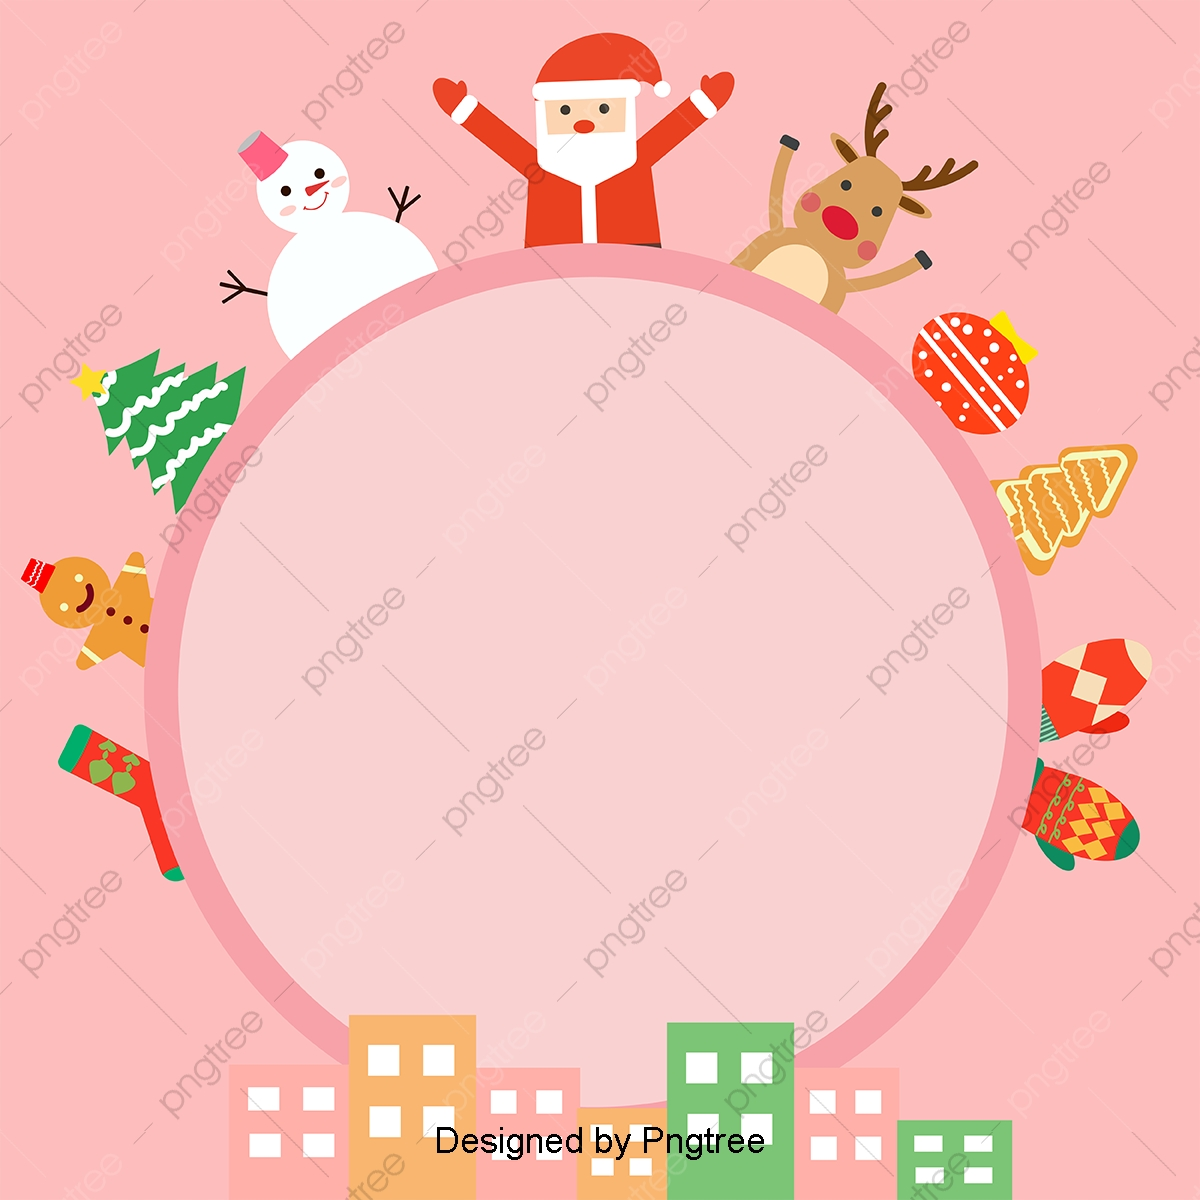 Pink Cute Cartoon Christmas Background With Simple Materials